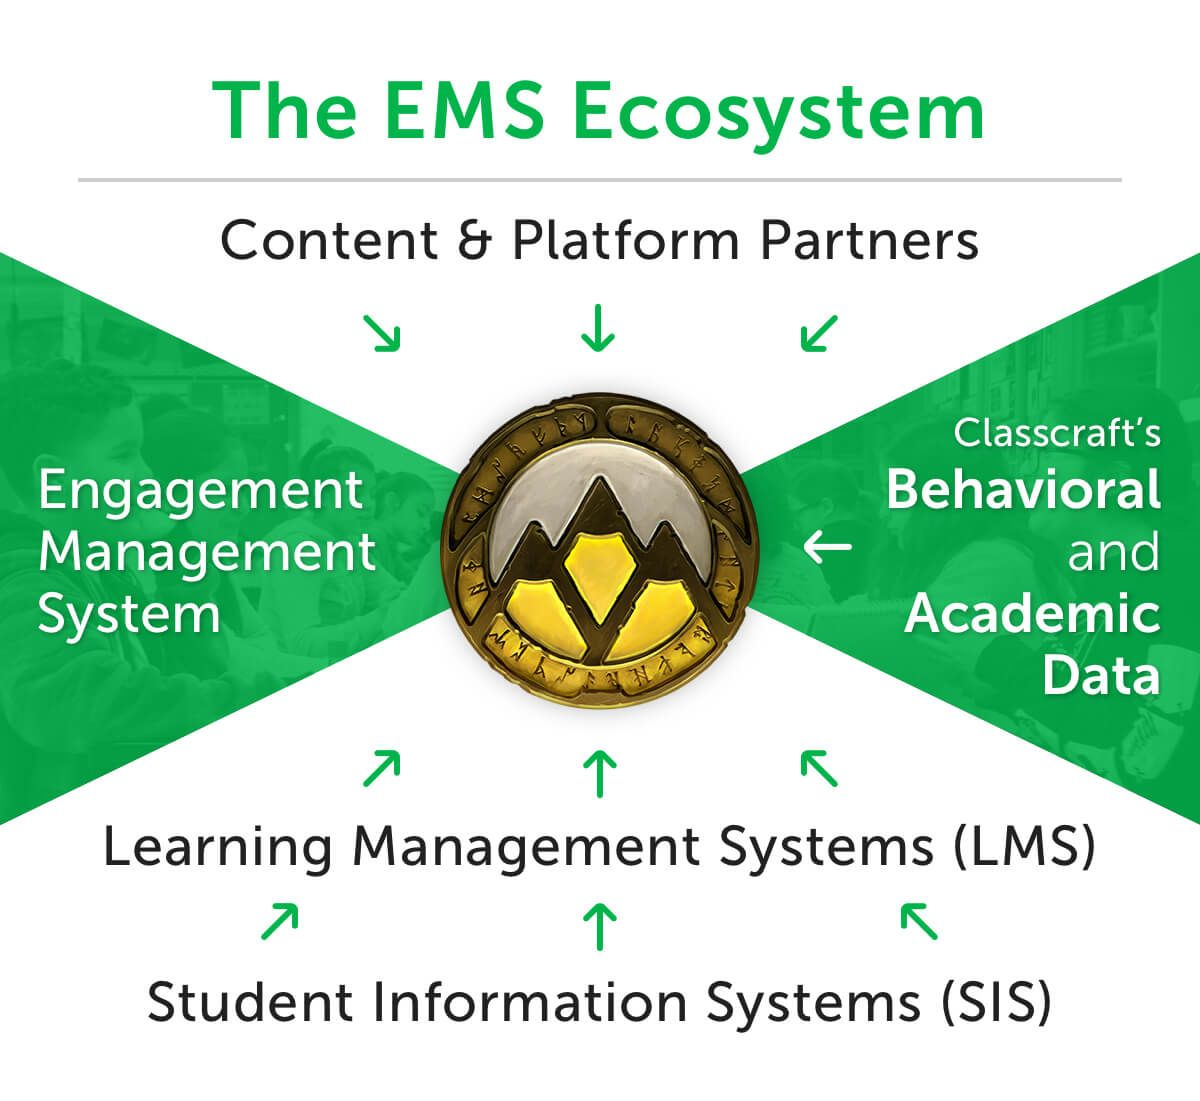 Classcraft Ems Ecosystem Infographic Showing The Different